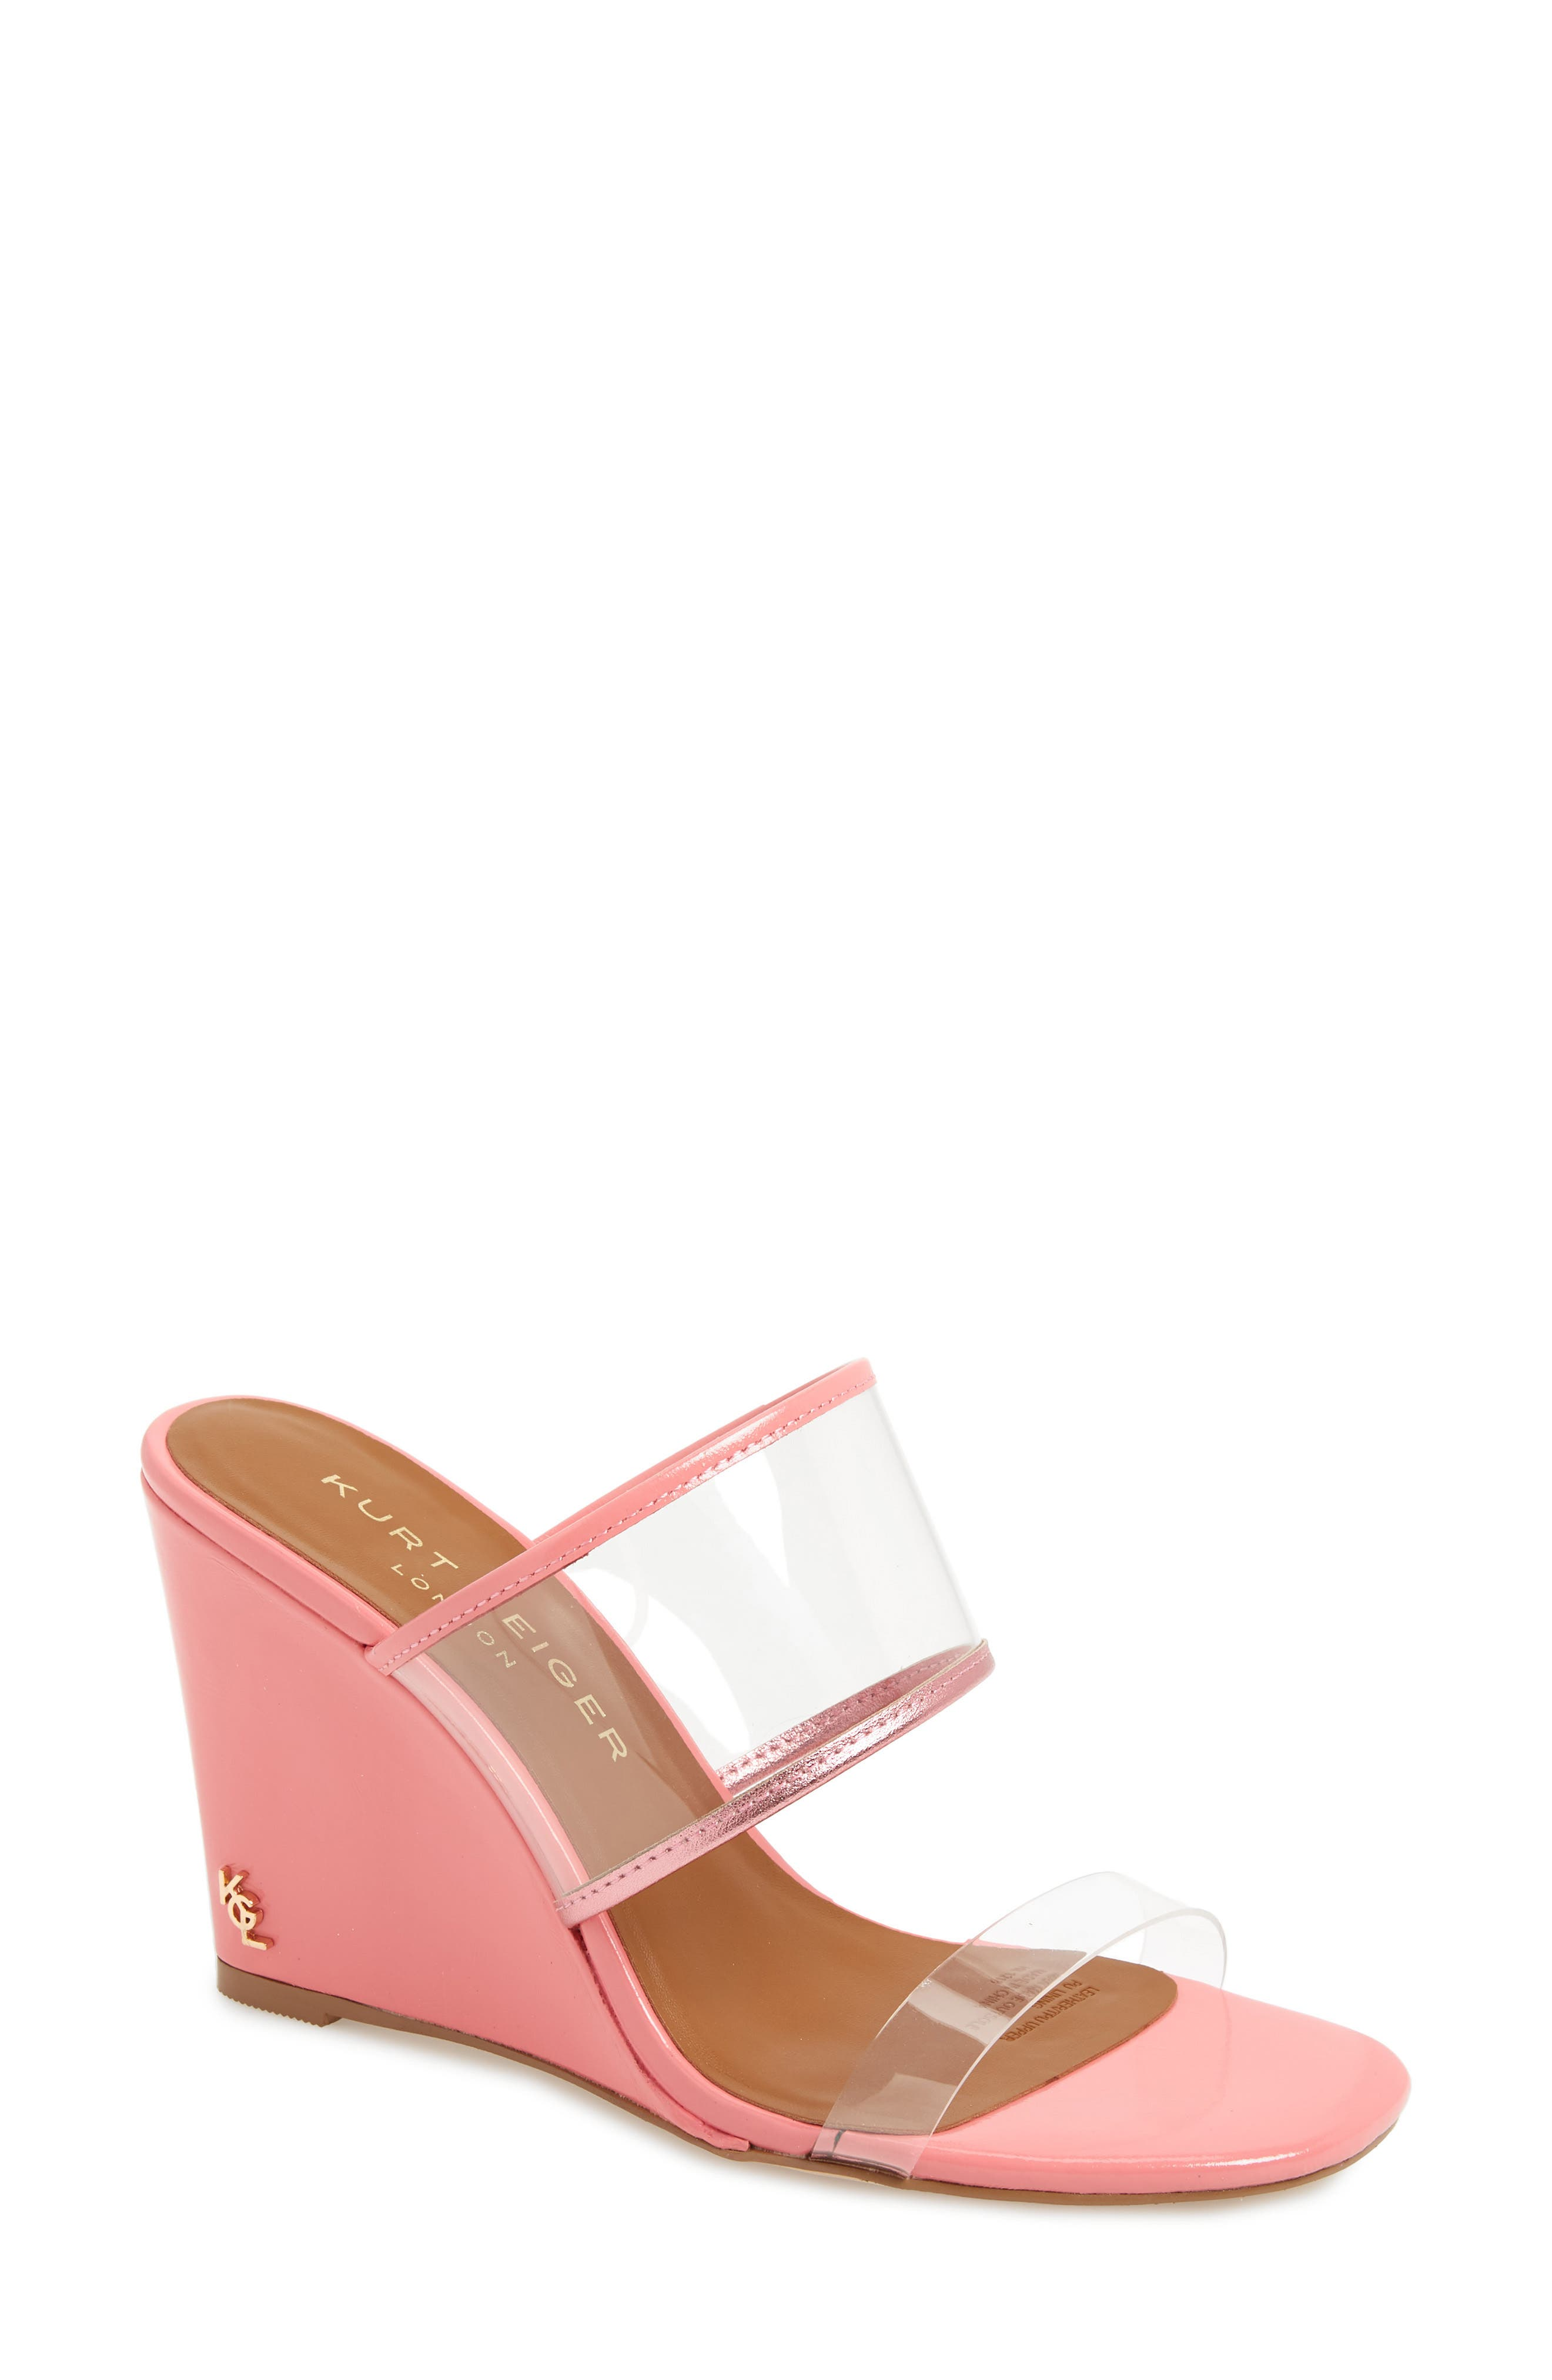 KURT GEIGER LONDON,                             Charing Wedge Slide Sandal,                             Main thumbnail 1, color,                             PINK FAUX LEATHER